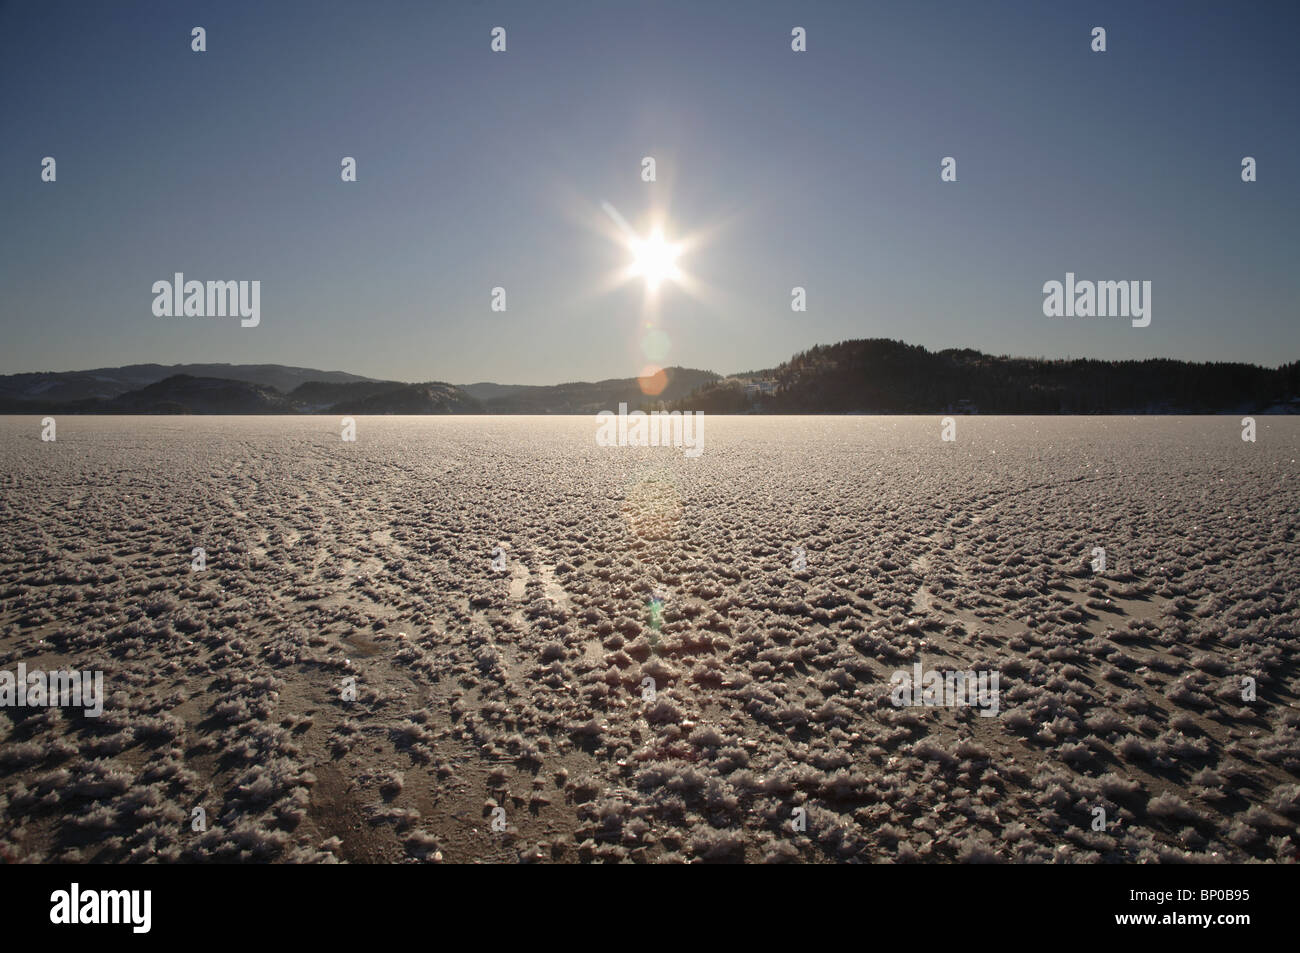 Frozen lake, sun low on horizon - Stock Image